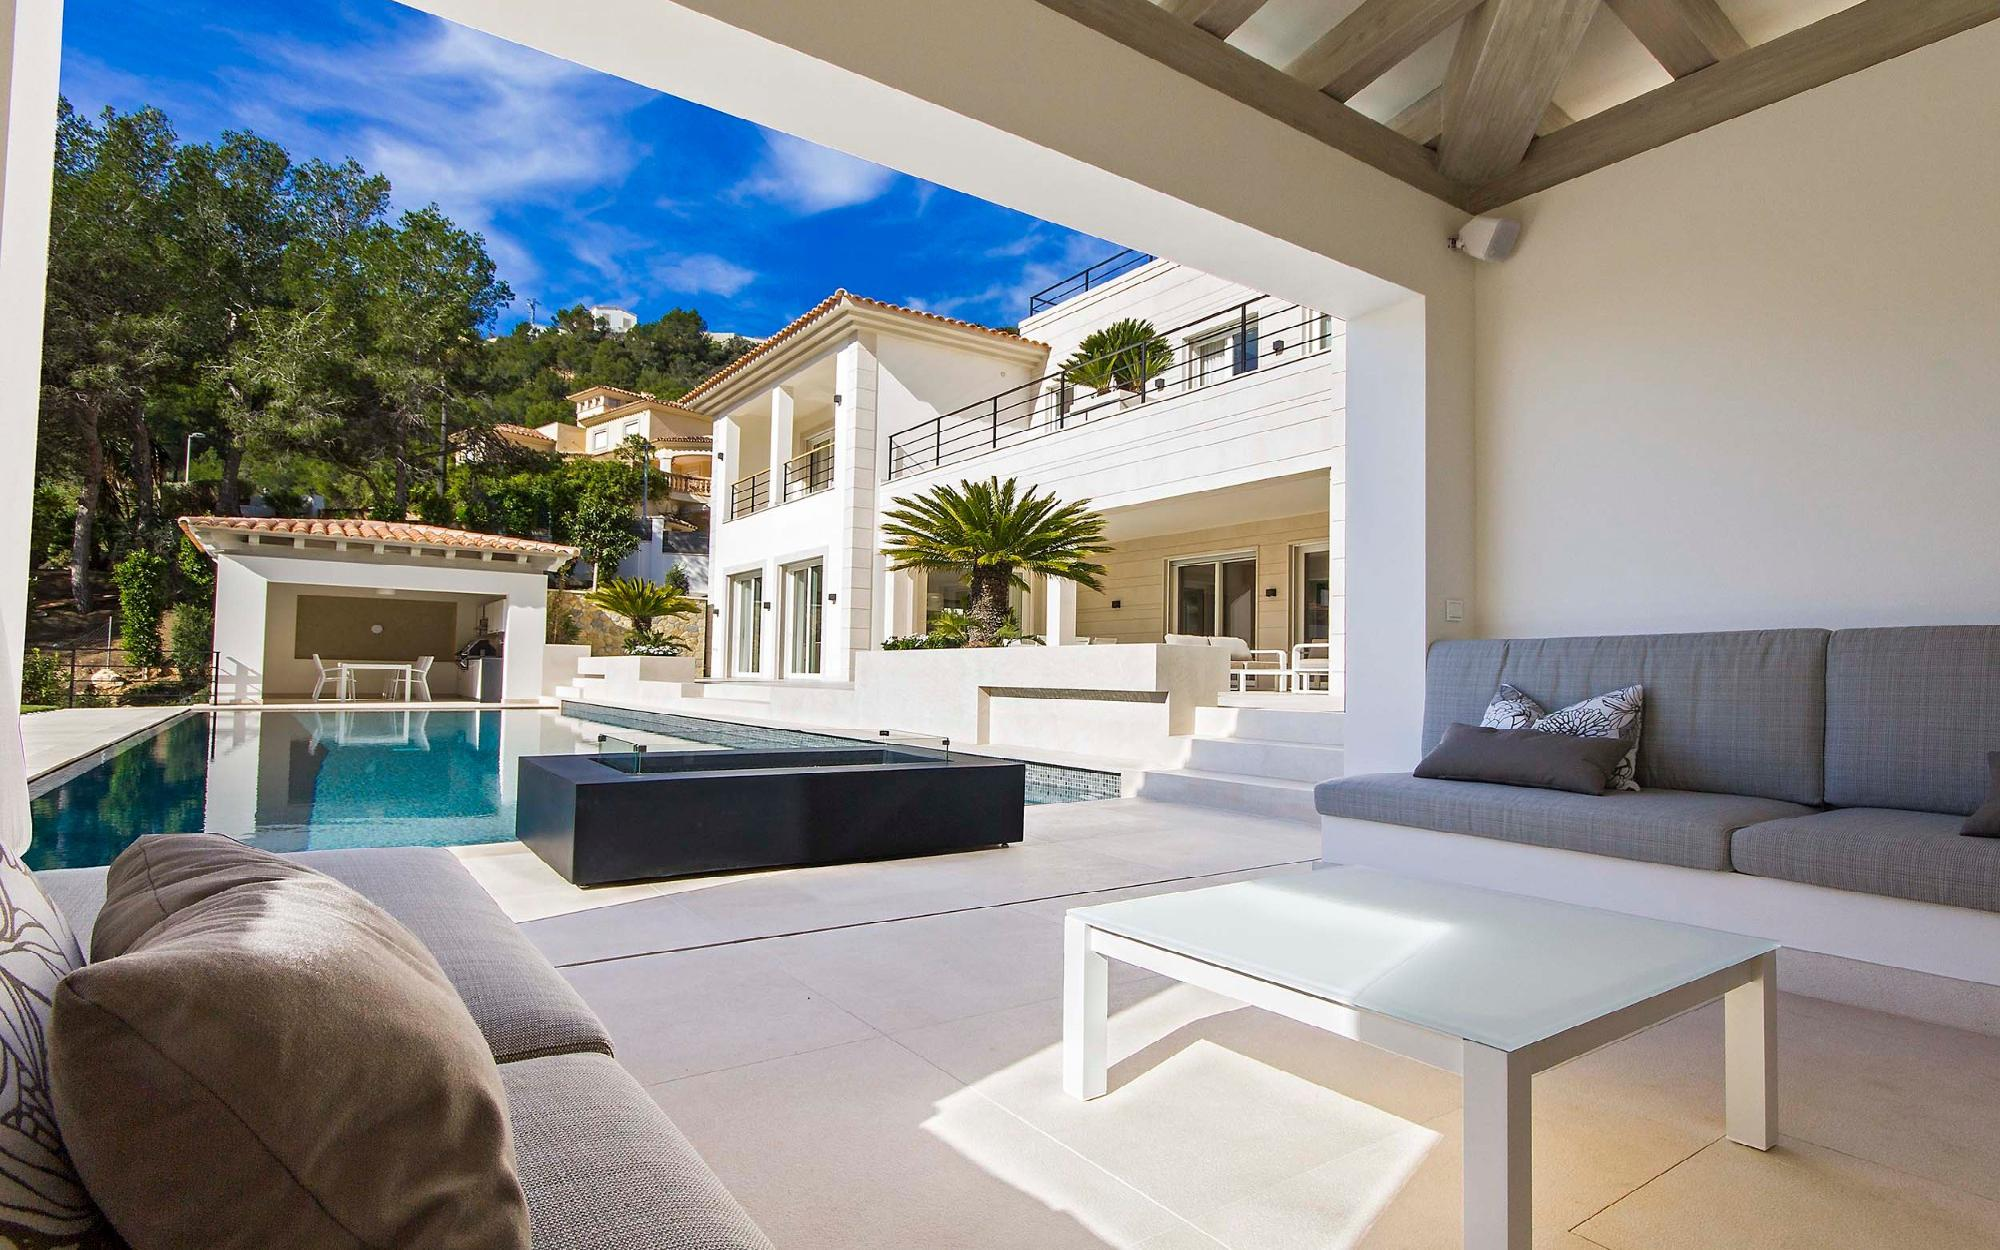 Mediterranean family villa in Mallorca for Sale